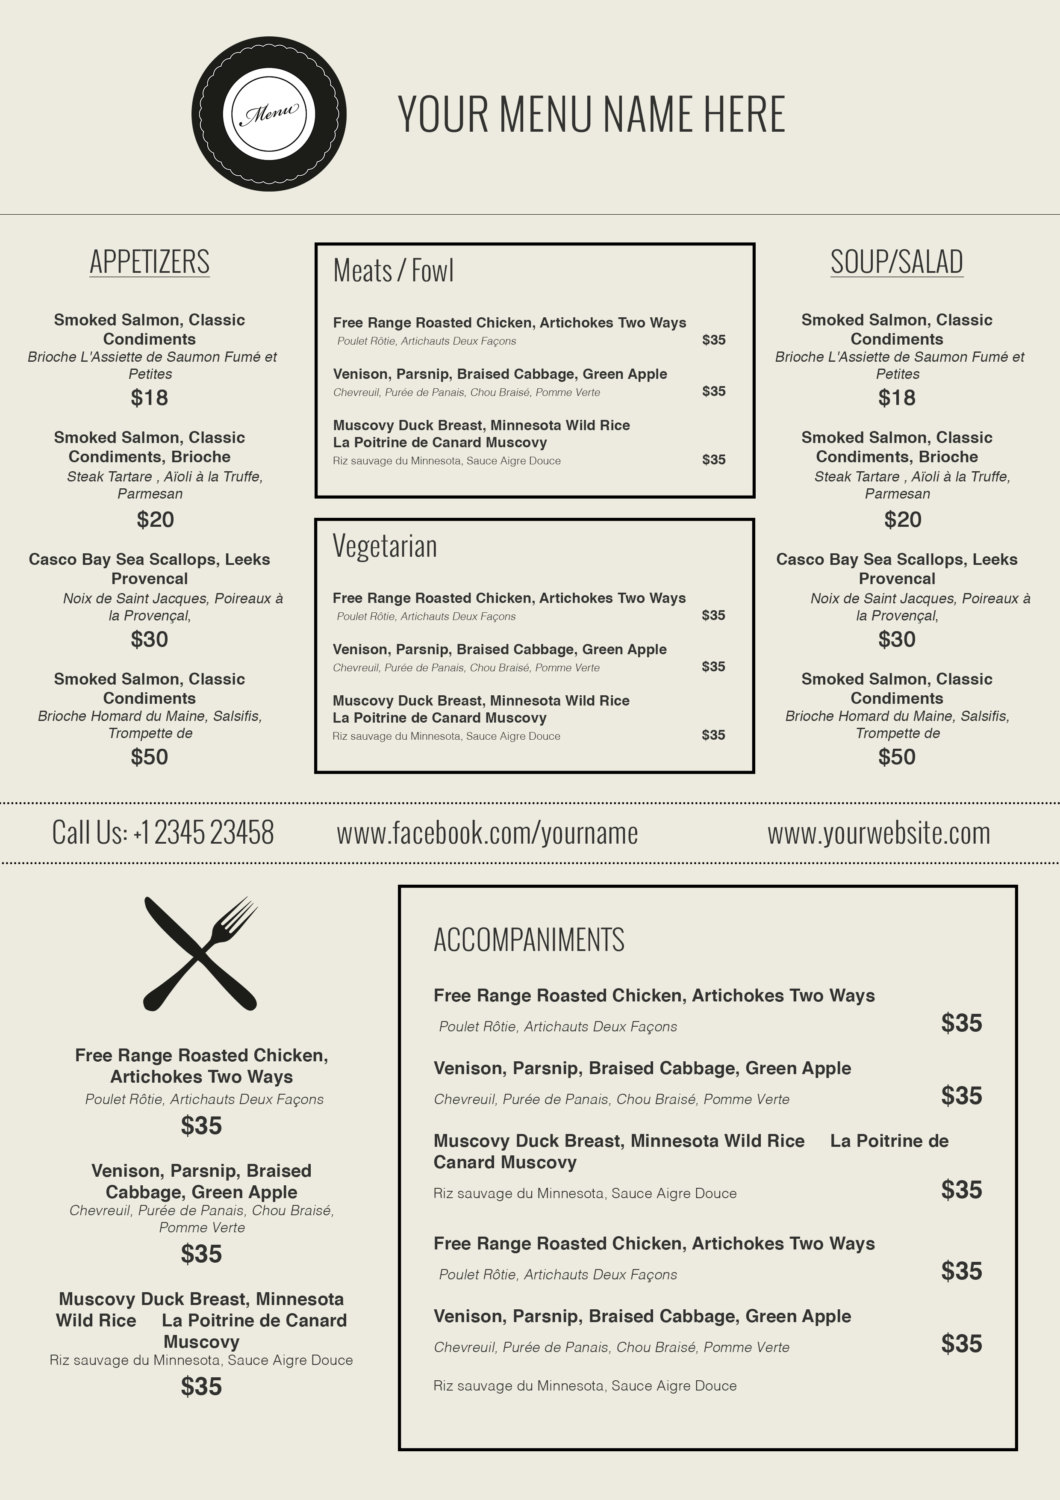 Friench Food Menu Template In Ms Word  Catering Menu Template Free